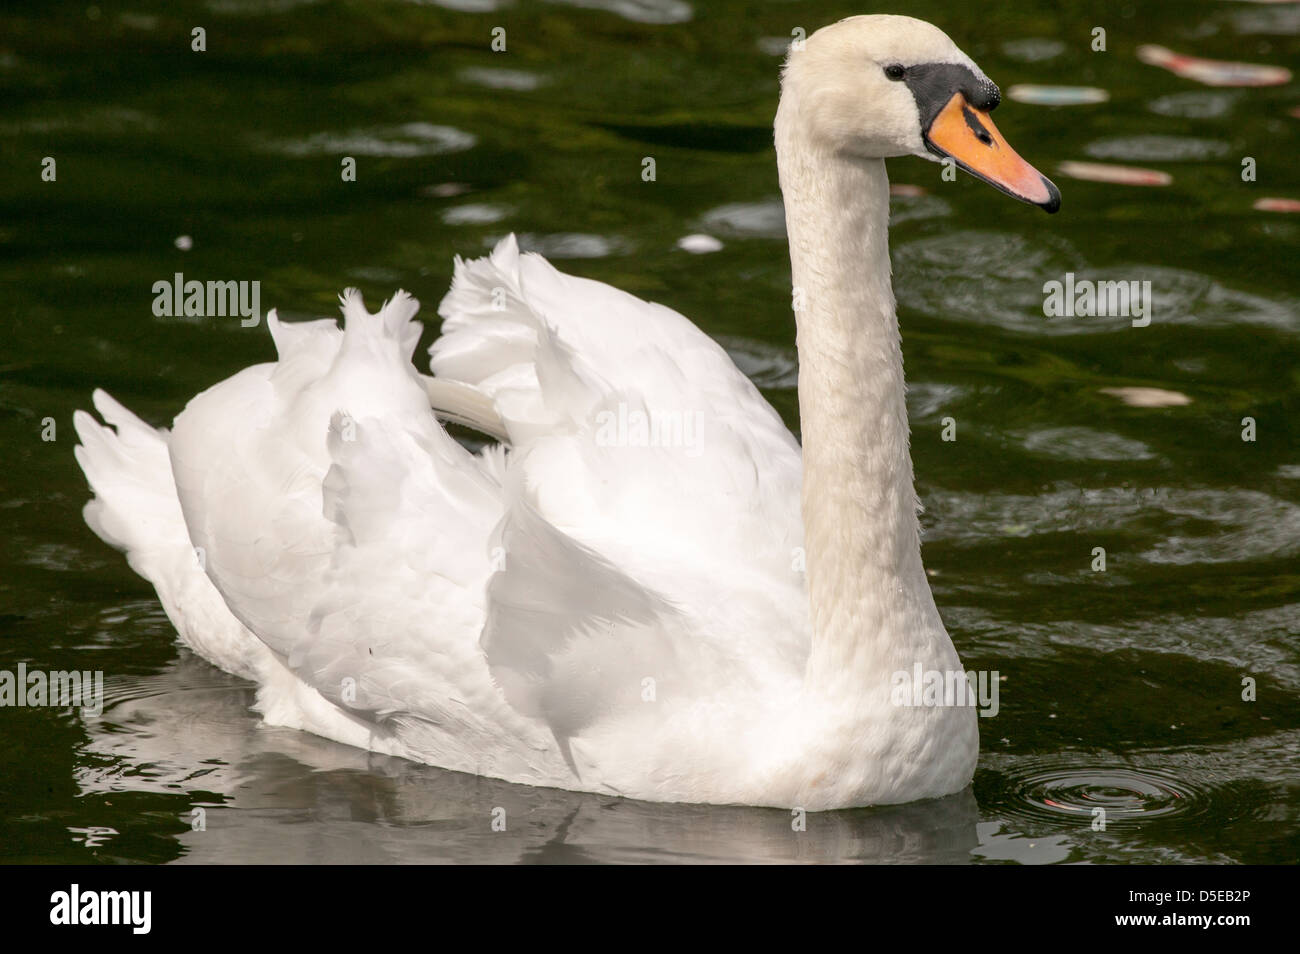 Mute Swan Cygnus olor  floating around looking regal on the lake. Stock Photo